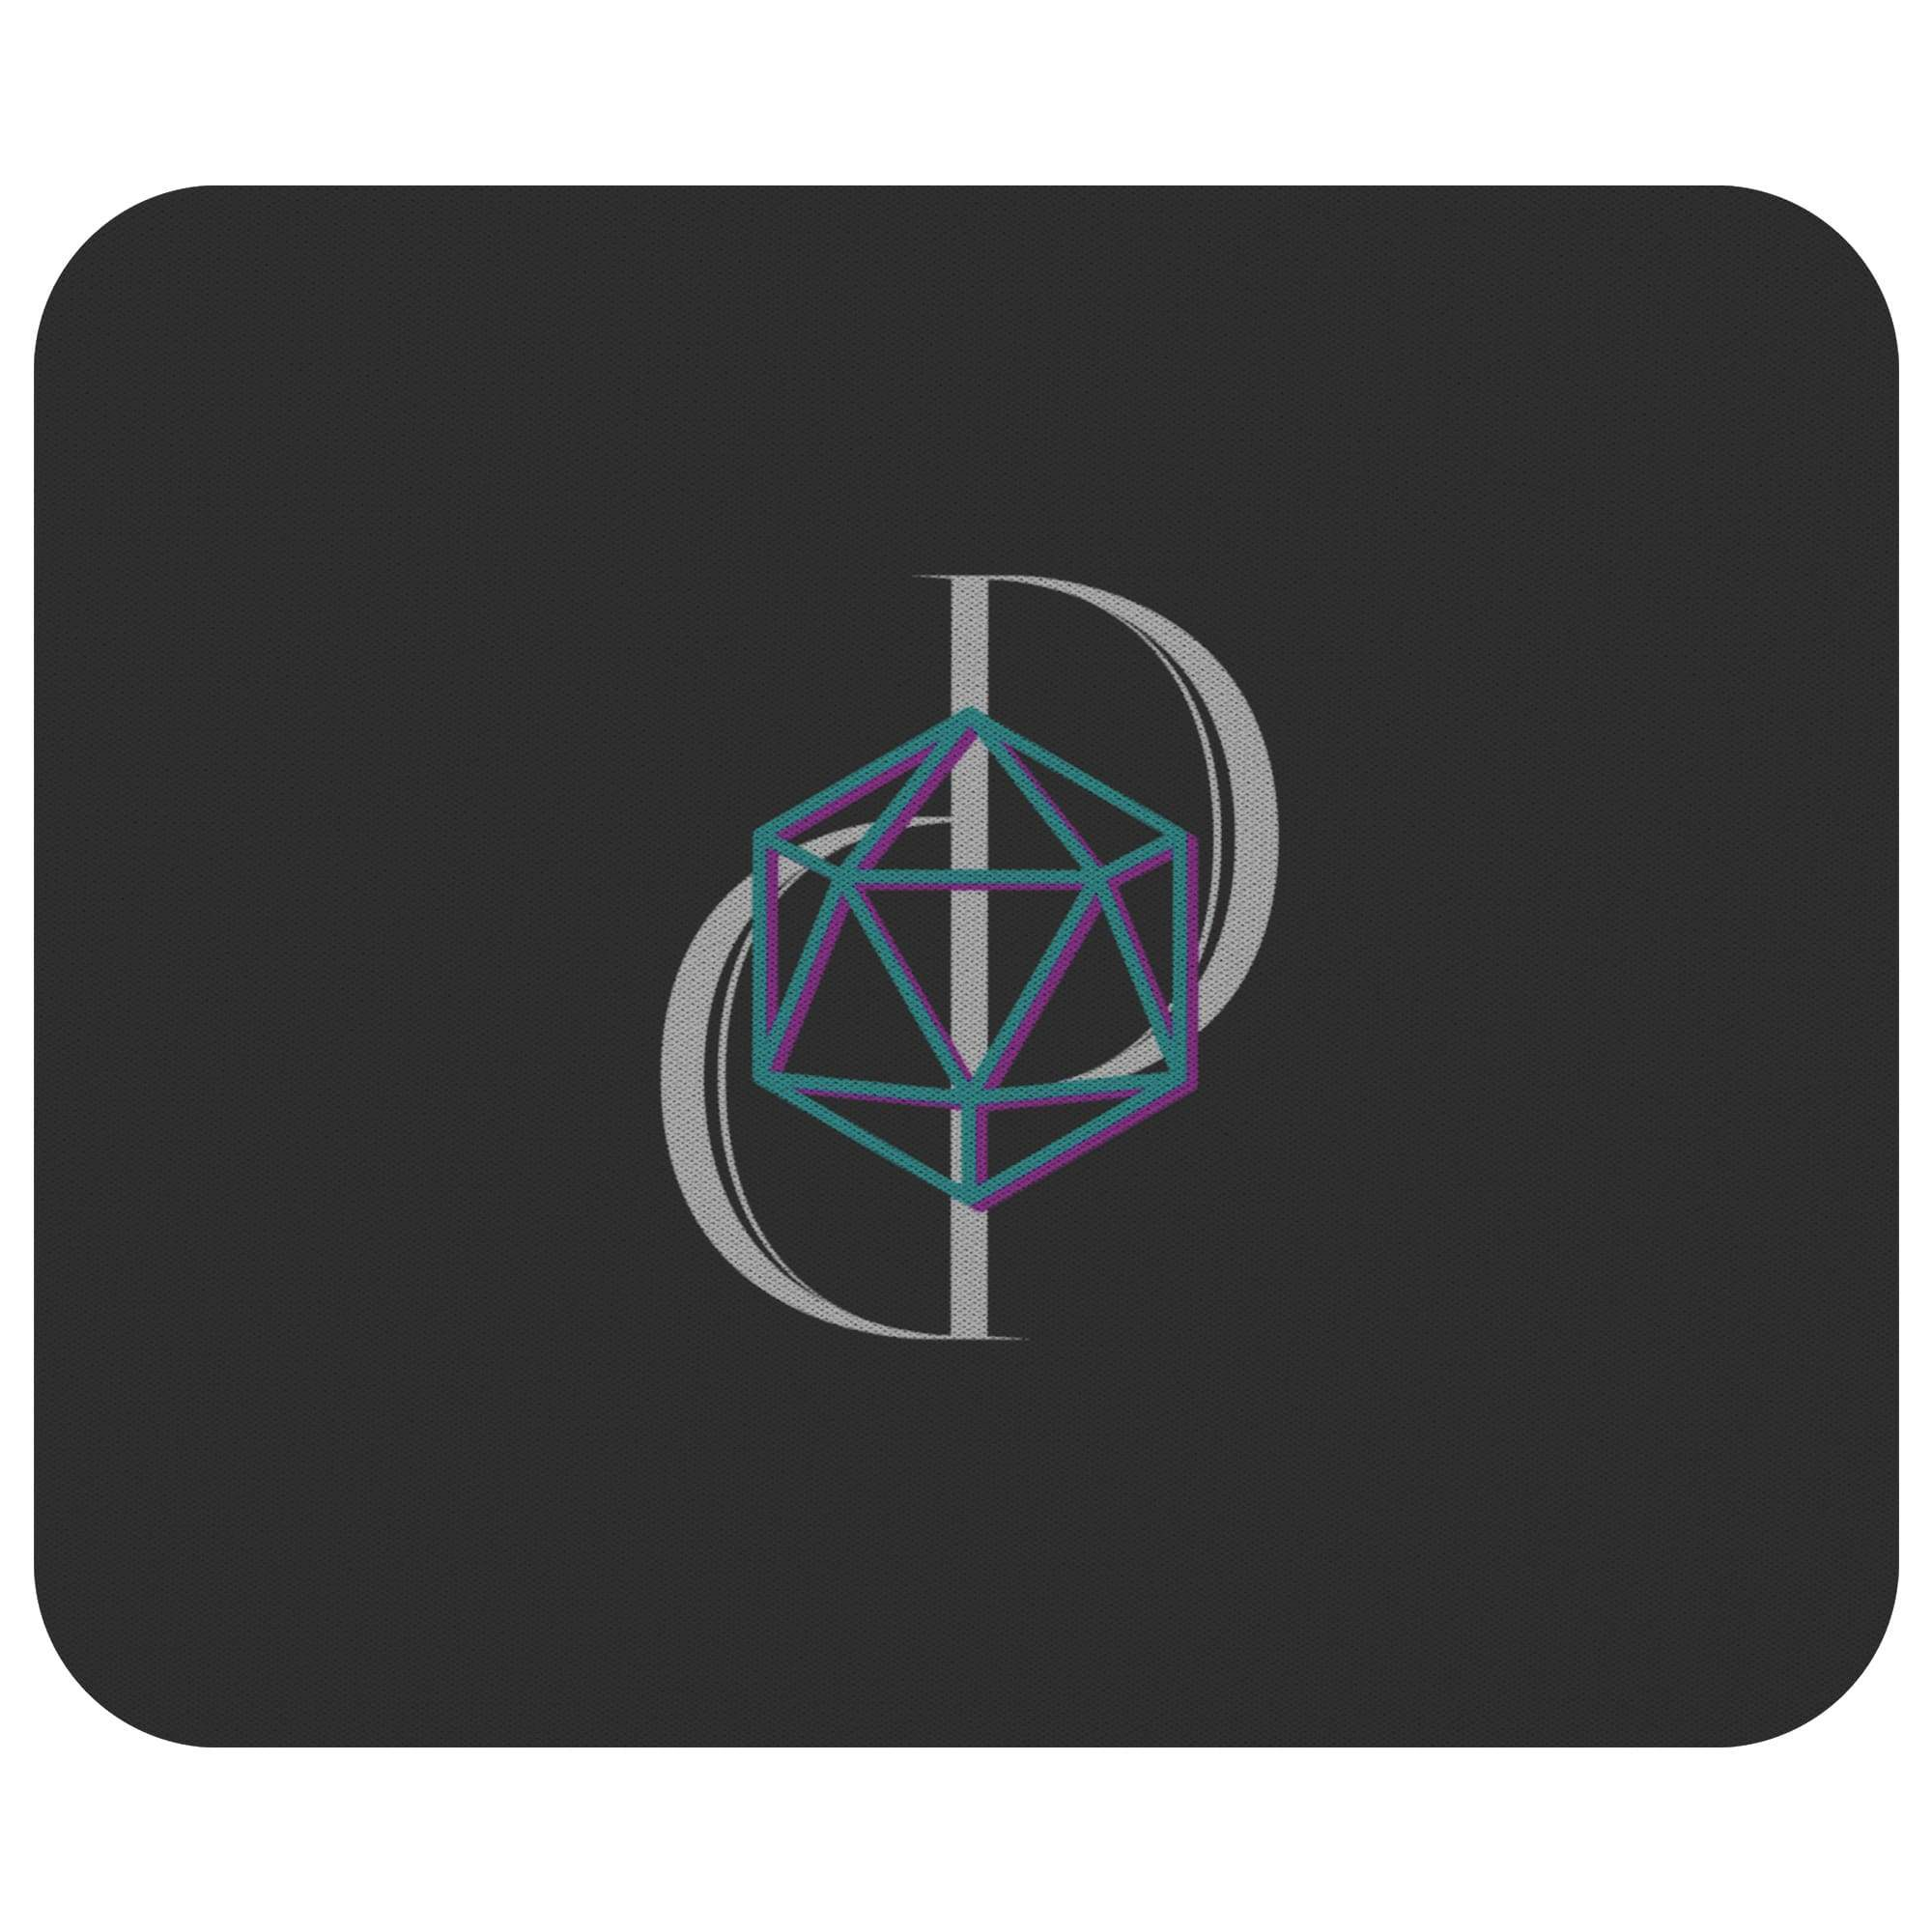 Dice Priori Mousepad (5 Styles) - DP-D2LC-Mou - Mousepads